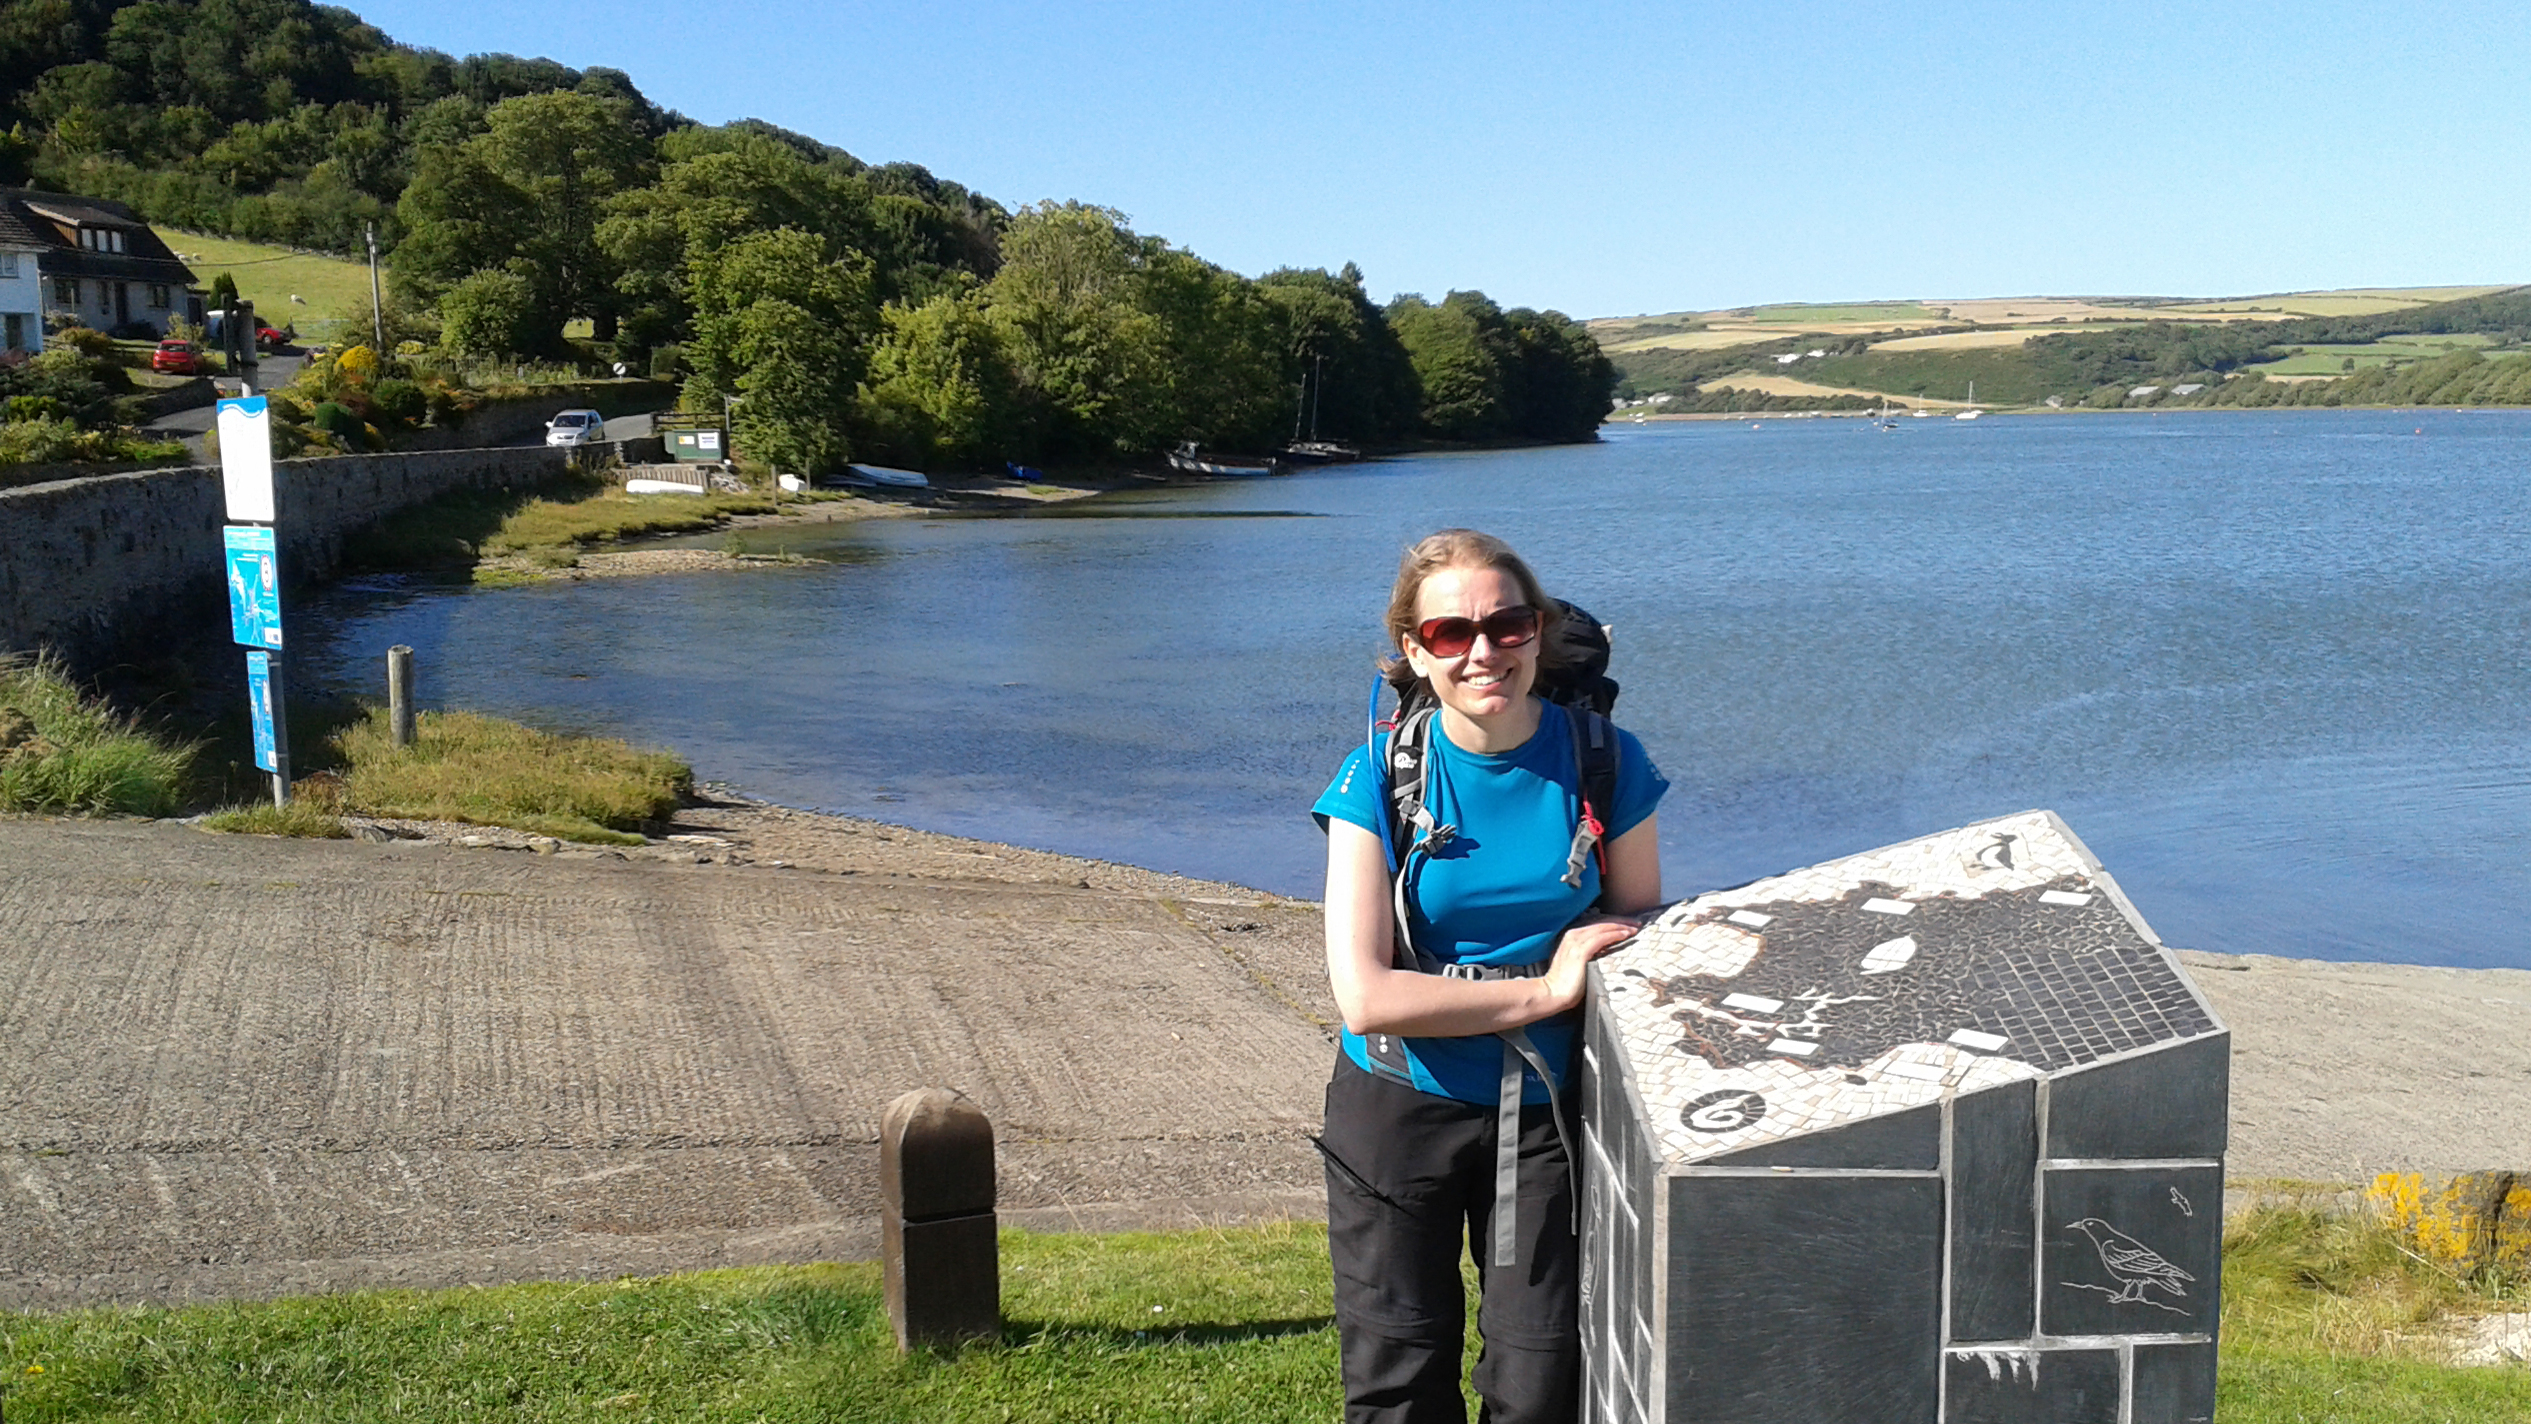 Lynne at St Dogmeals the end of the Pembrokeshire Coast Path